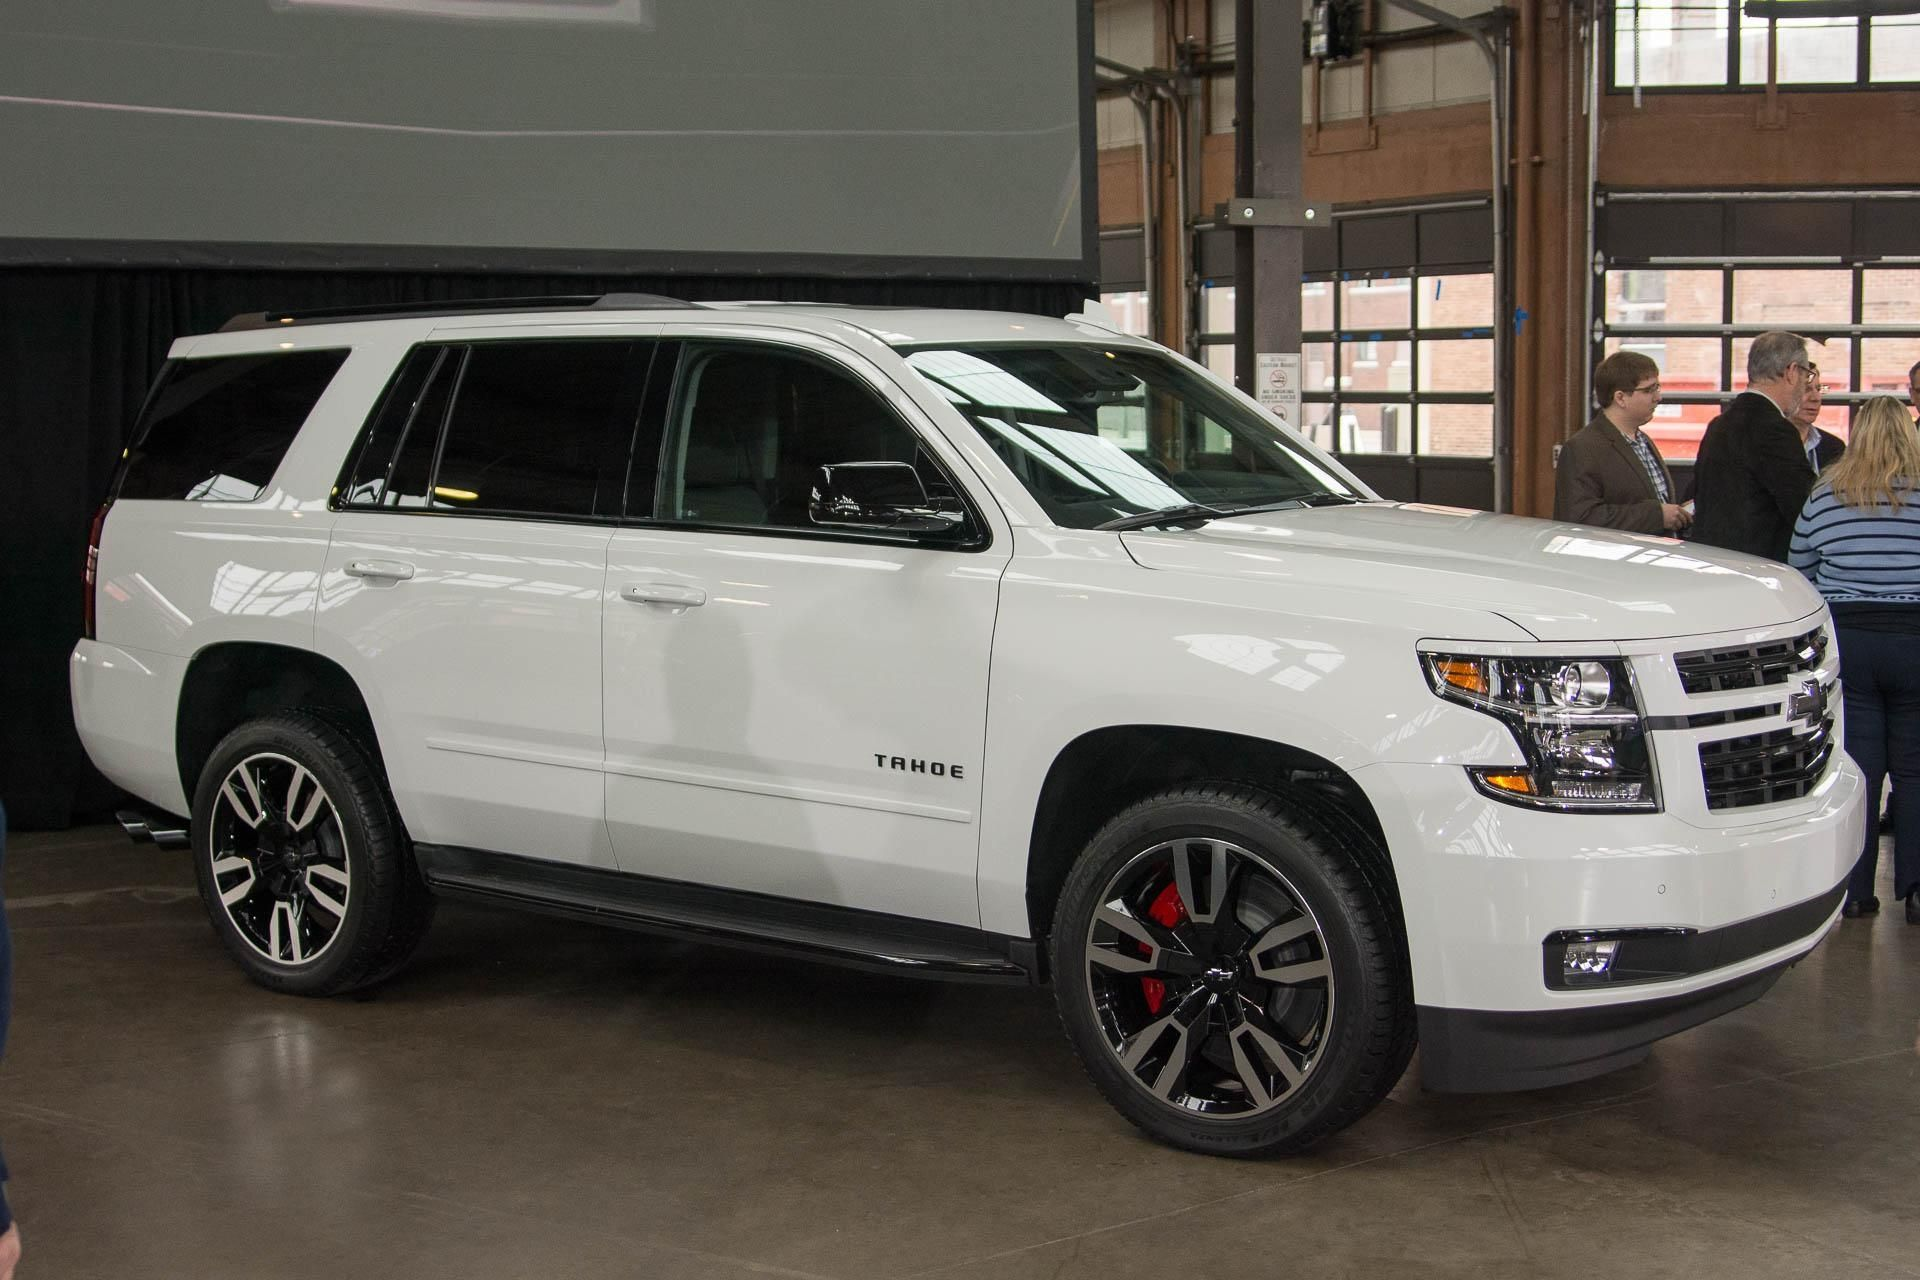 2018 Chevrolet Tahoe Suburban Rst Are 420 Hp Frat Boy Specials